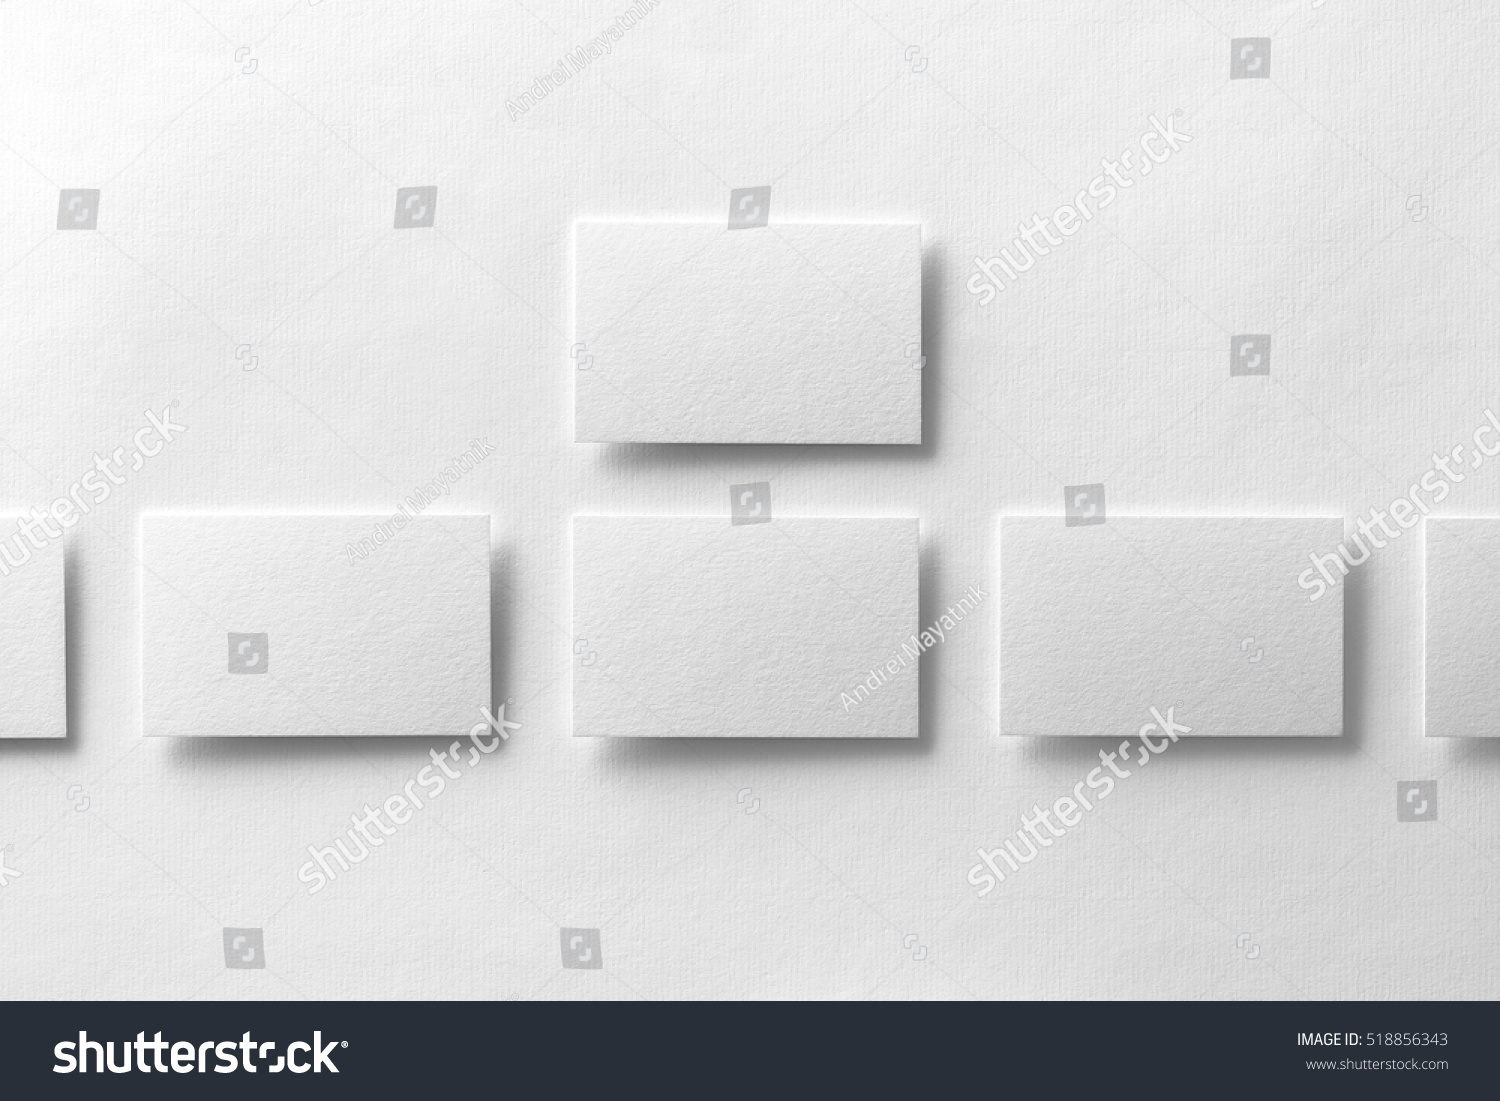 Mockup Business Cards Rows White Textured Stock Photo 518856343 ...